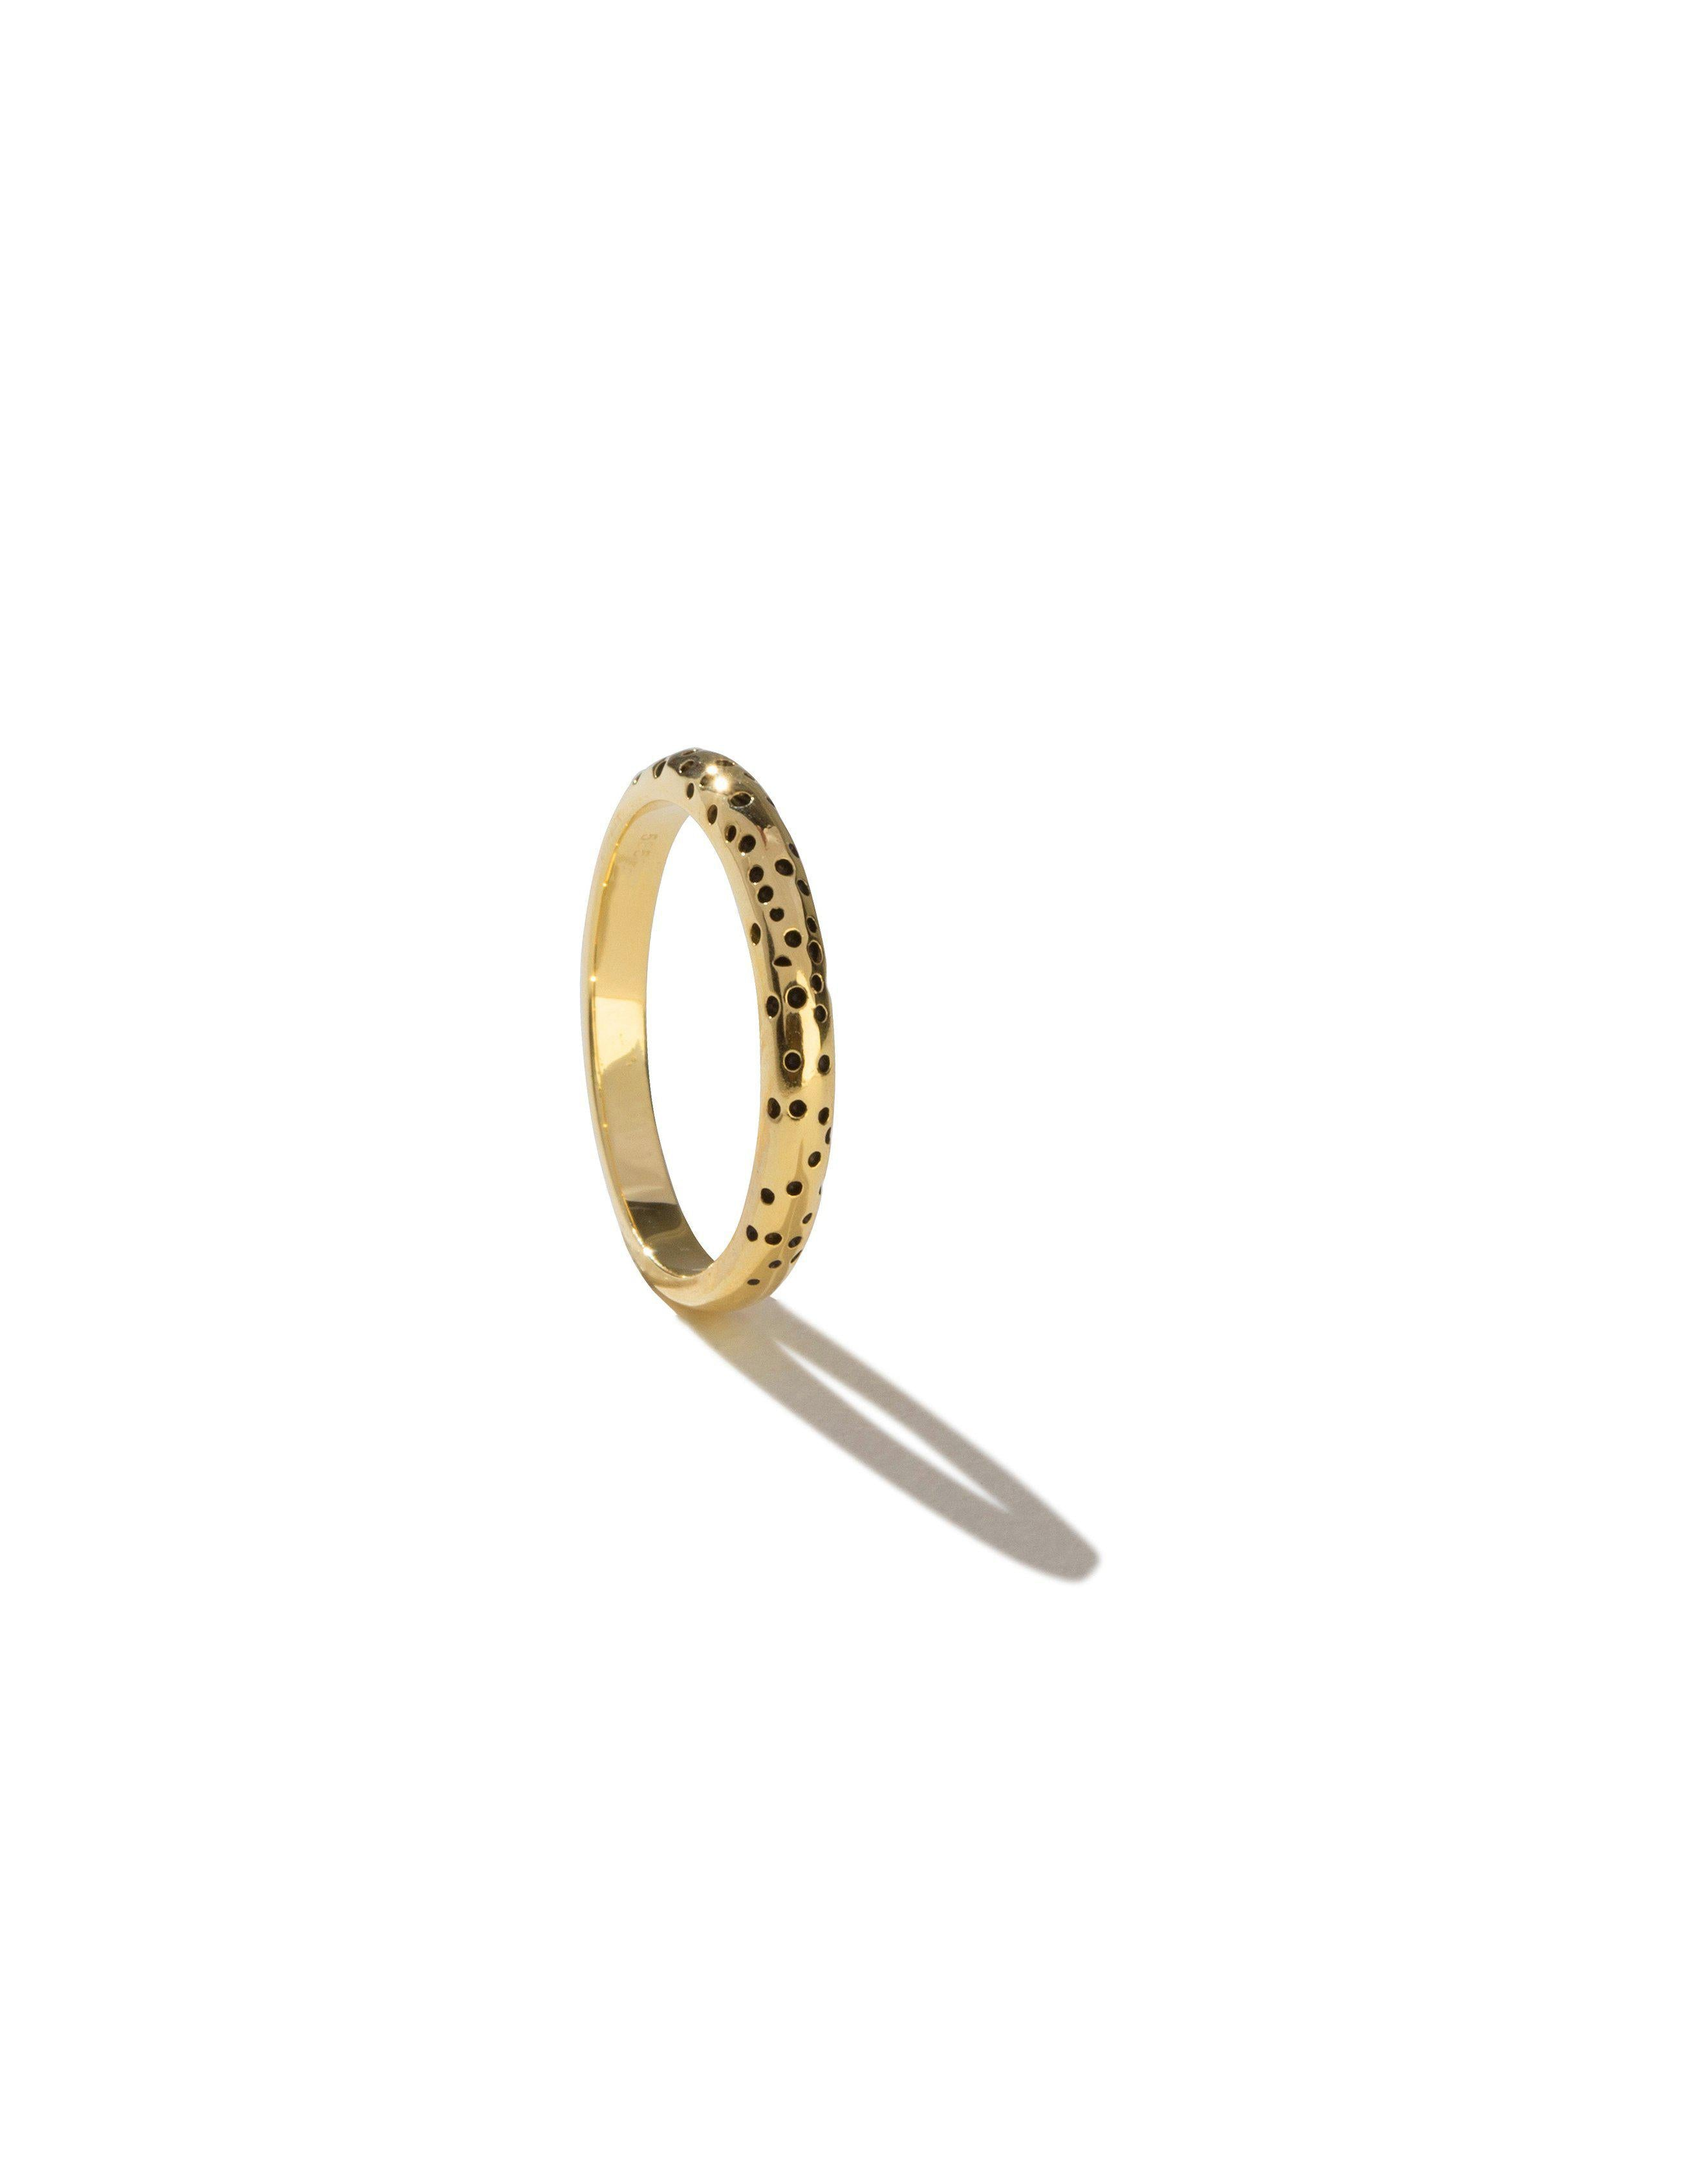 Surface ring, solid 14 karat gold-The World Is Not Enough Collection -Overload Studios